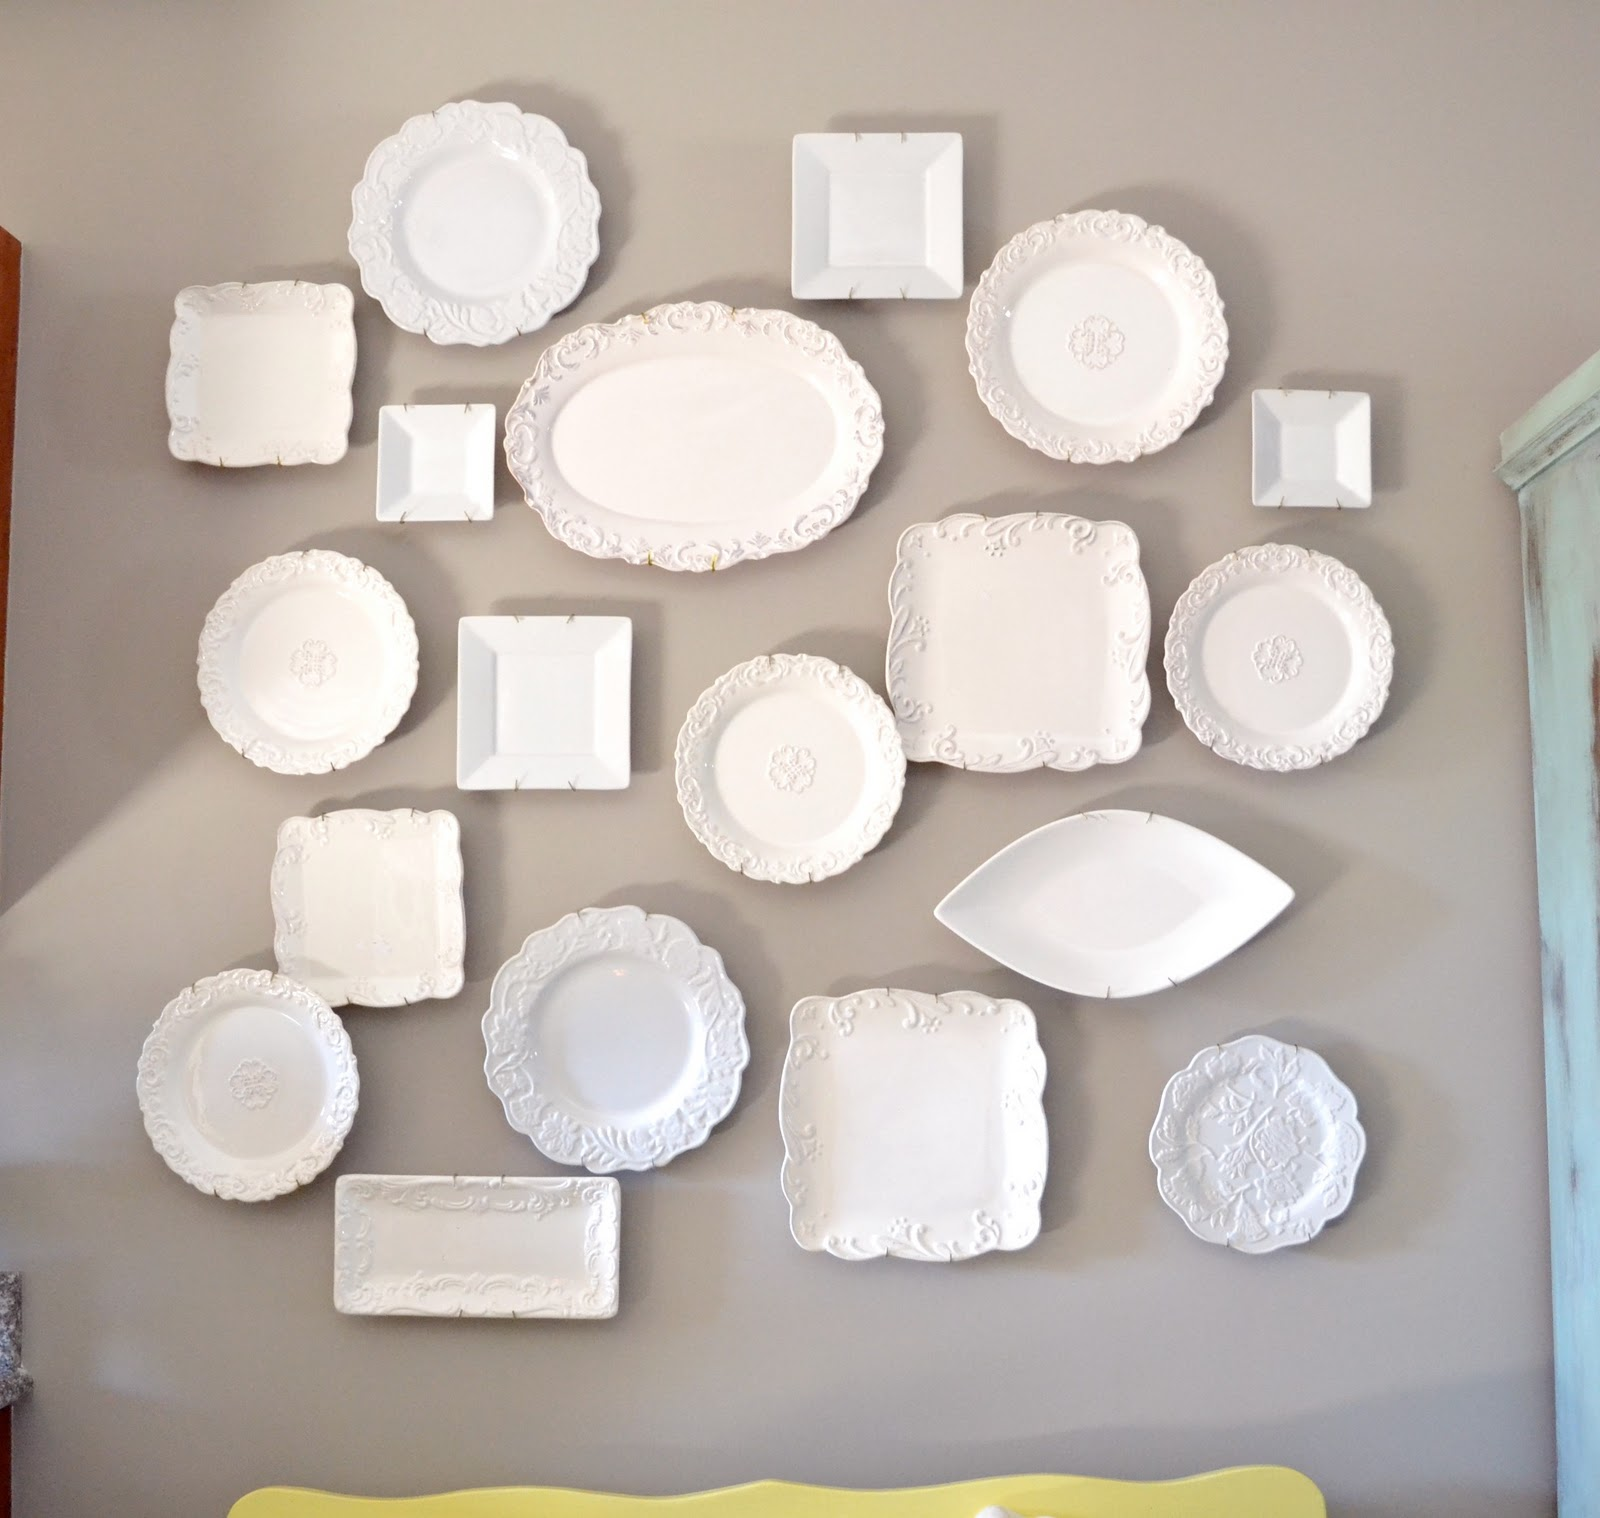 I hope you all love my eclectic plate wall art as much as I do! I am sure I will do some more re-arranging of the plates soon and even add some ... & Eclectic Plate Wall Art... - Liz Marie Blog